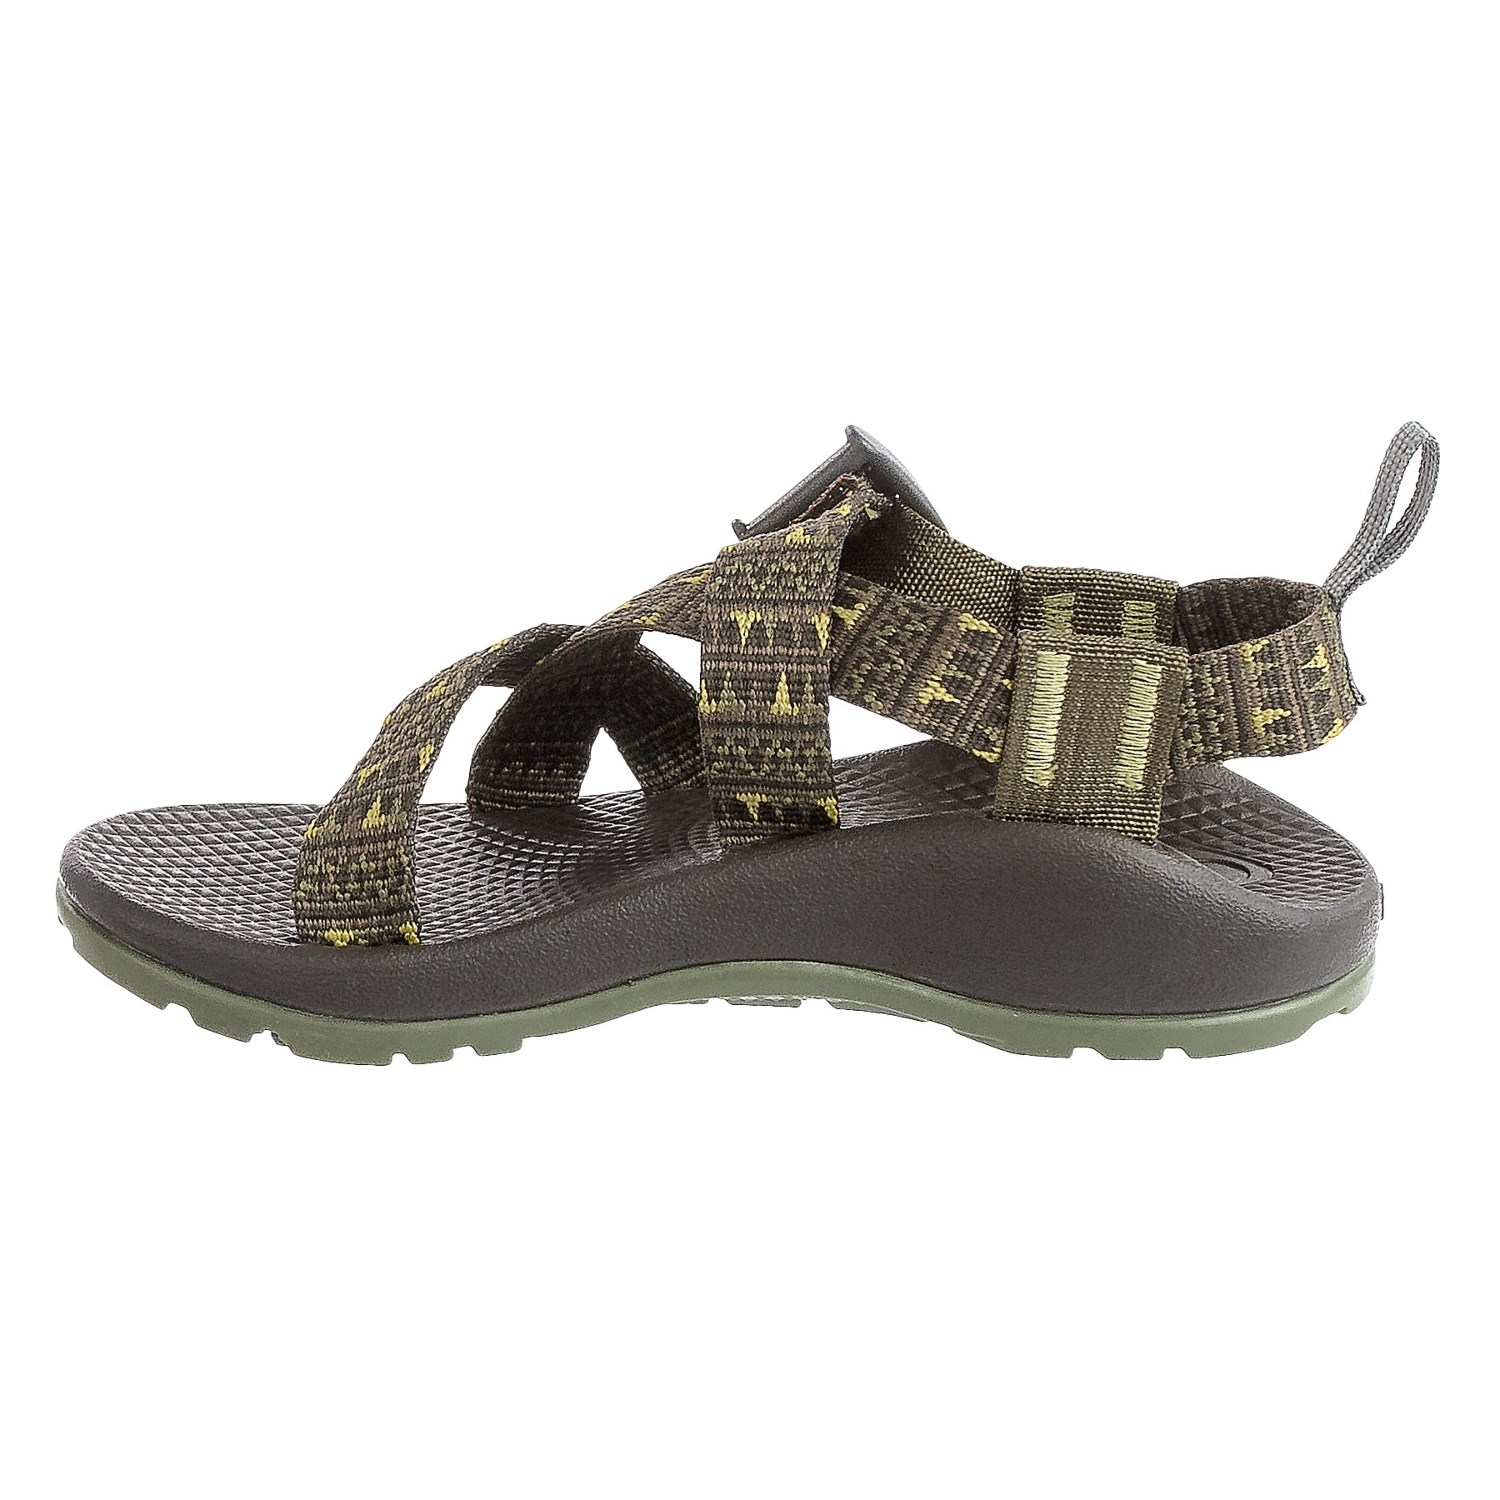 1cfd1c958b4a Chaco Z1 EcoTread Sandals (For Little and Big Kids) - Save 45%